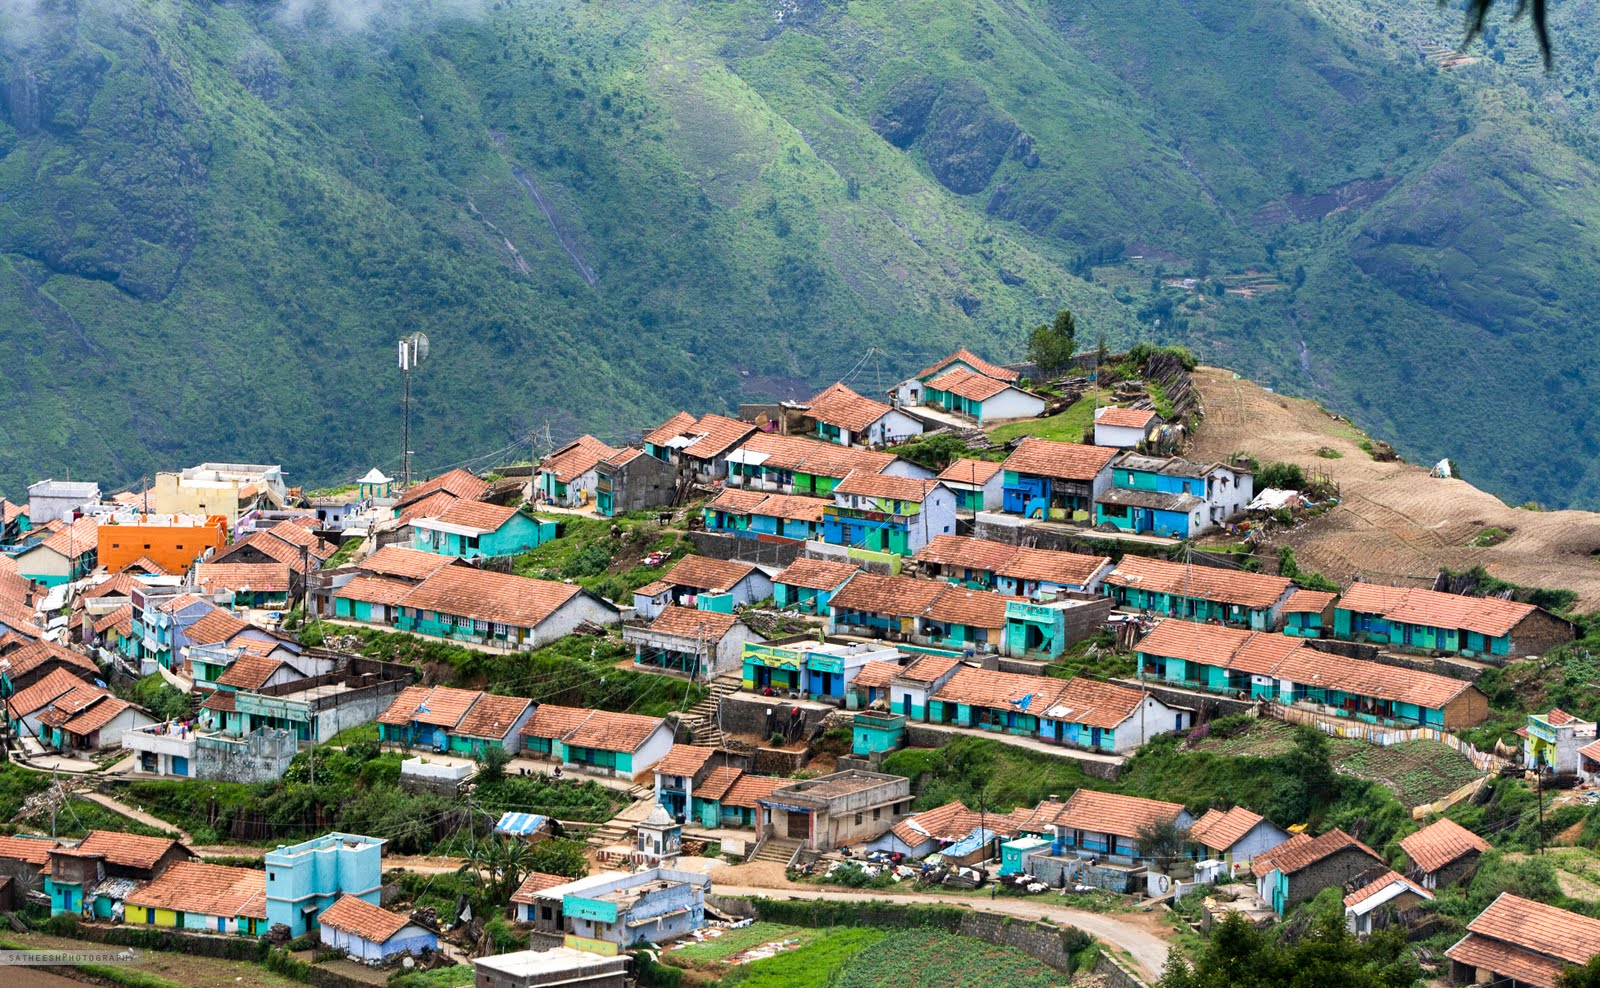 Kodaikanal India  city pictures gallery : satheesh clicks: Poombarai village, Kodaikanal, India.